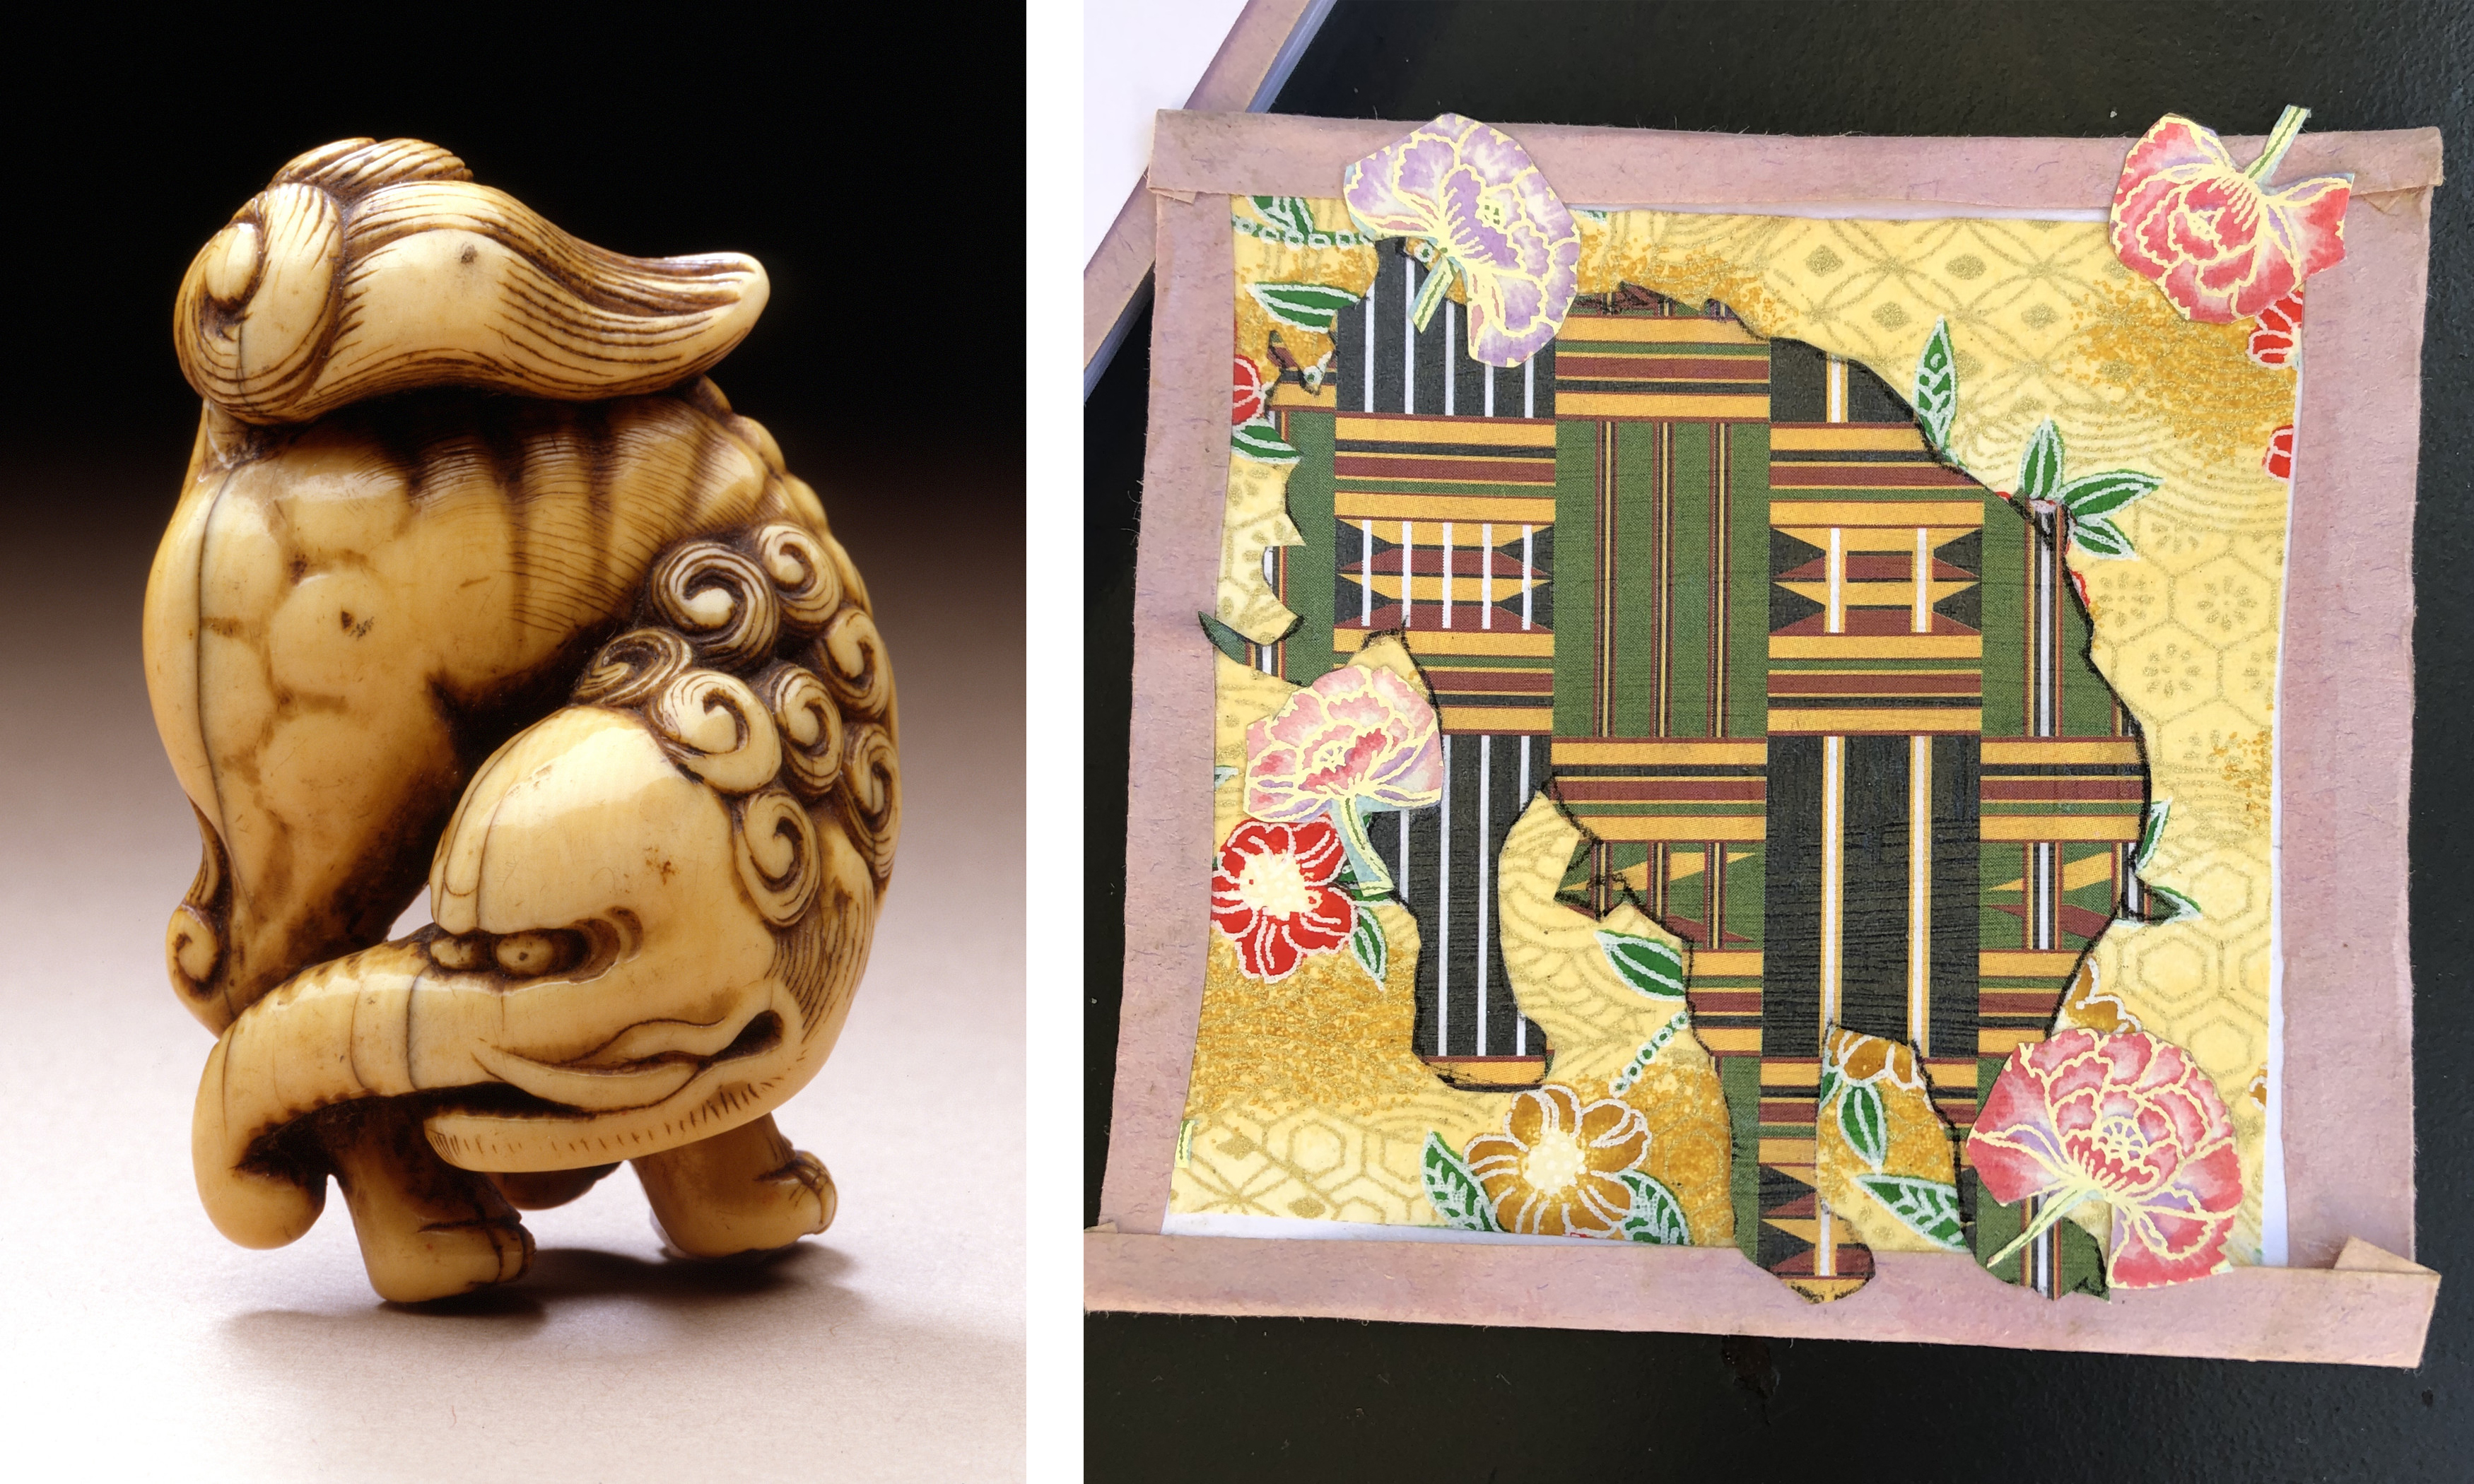 Left: Baku, Japan, 18th century, Los Angeles County Museum of Art, Raymond and Frances Bushell Collection, photo © Museum Associates/LACMA; Right: Young artist's Baku creation in Elonda Norris's workshop at Andell Family Sundays